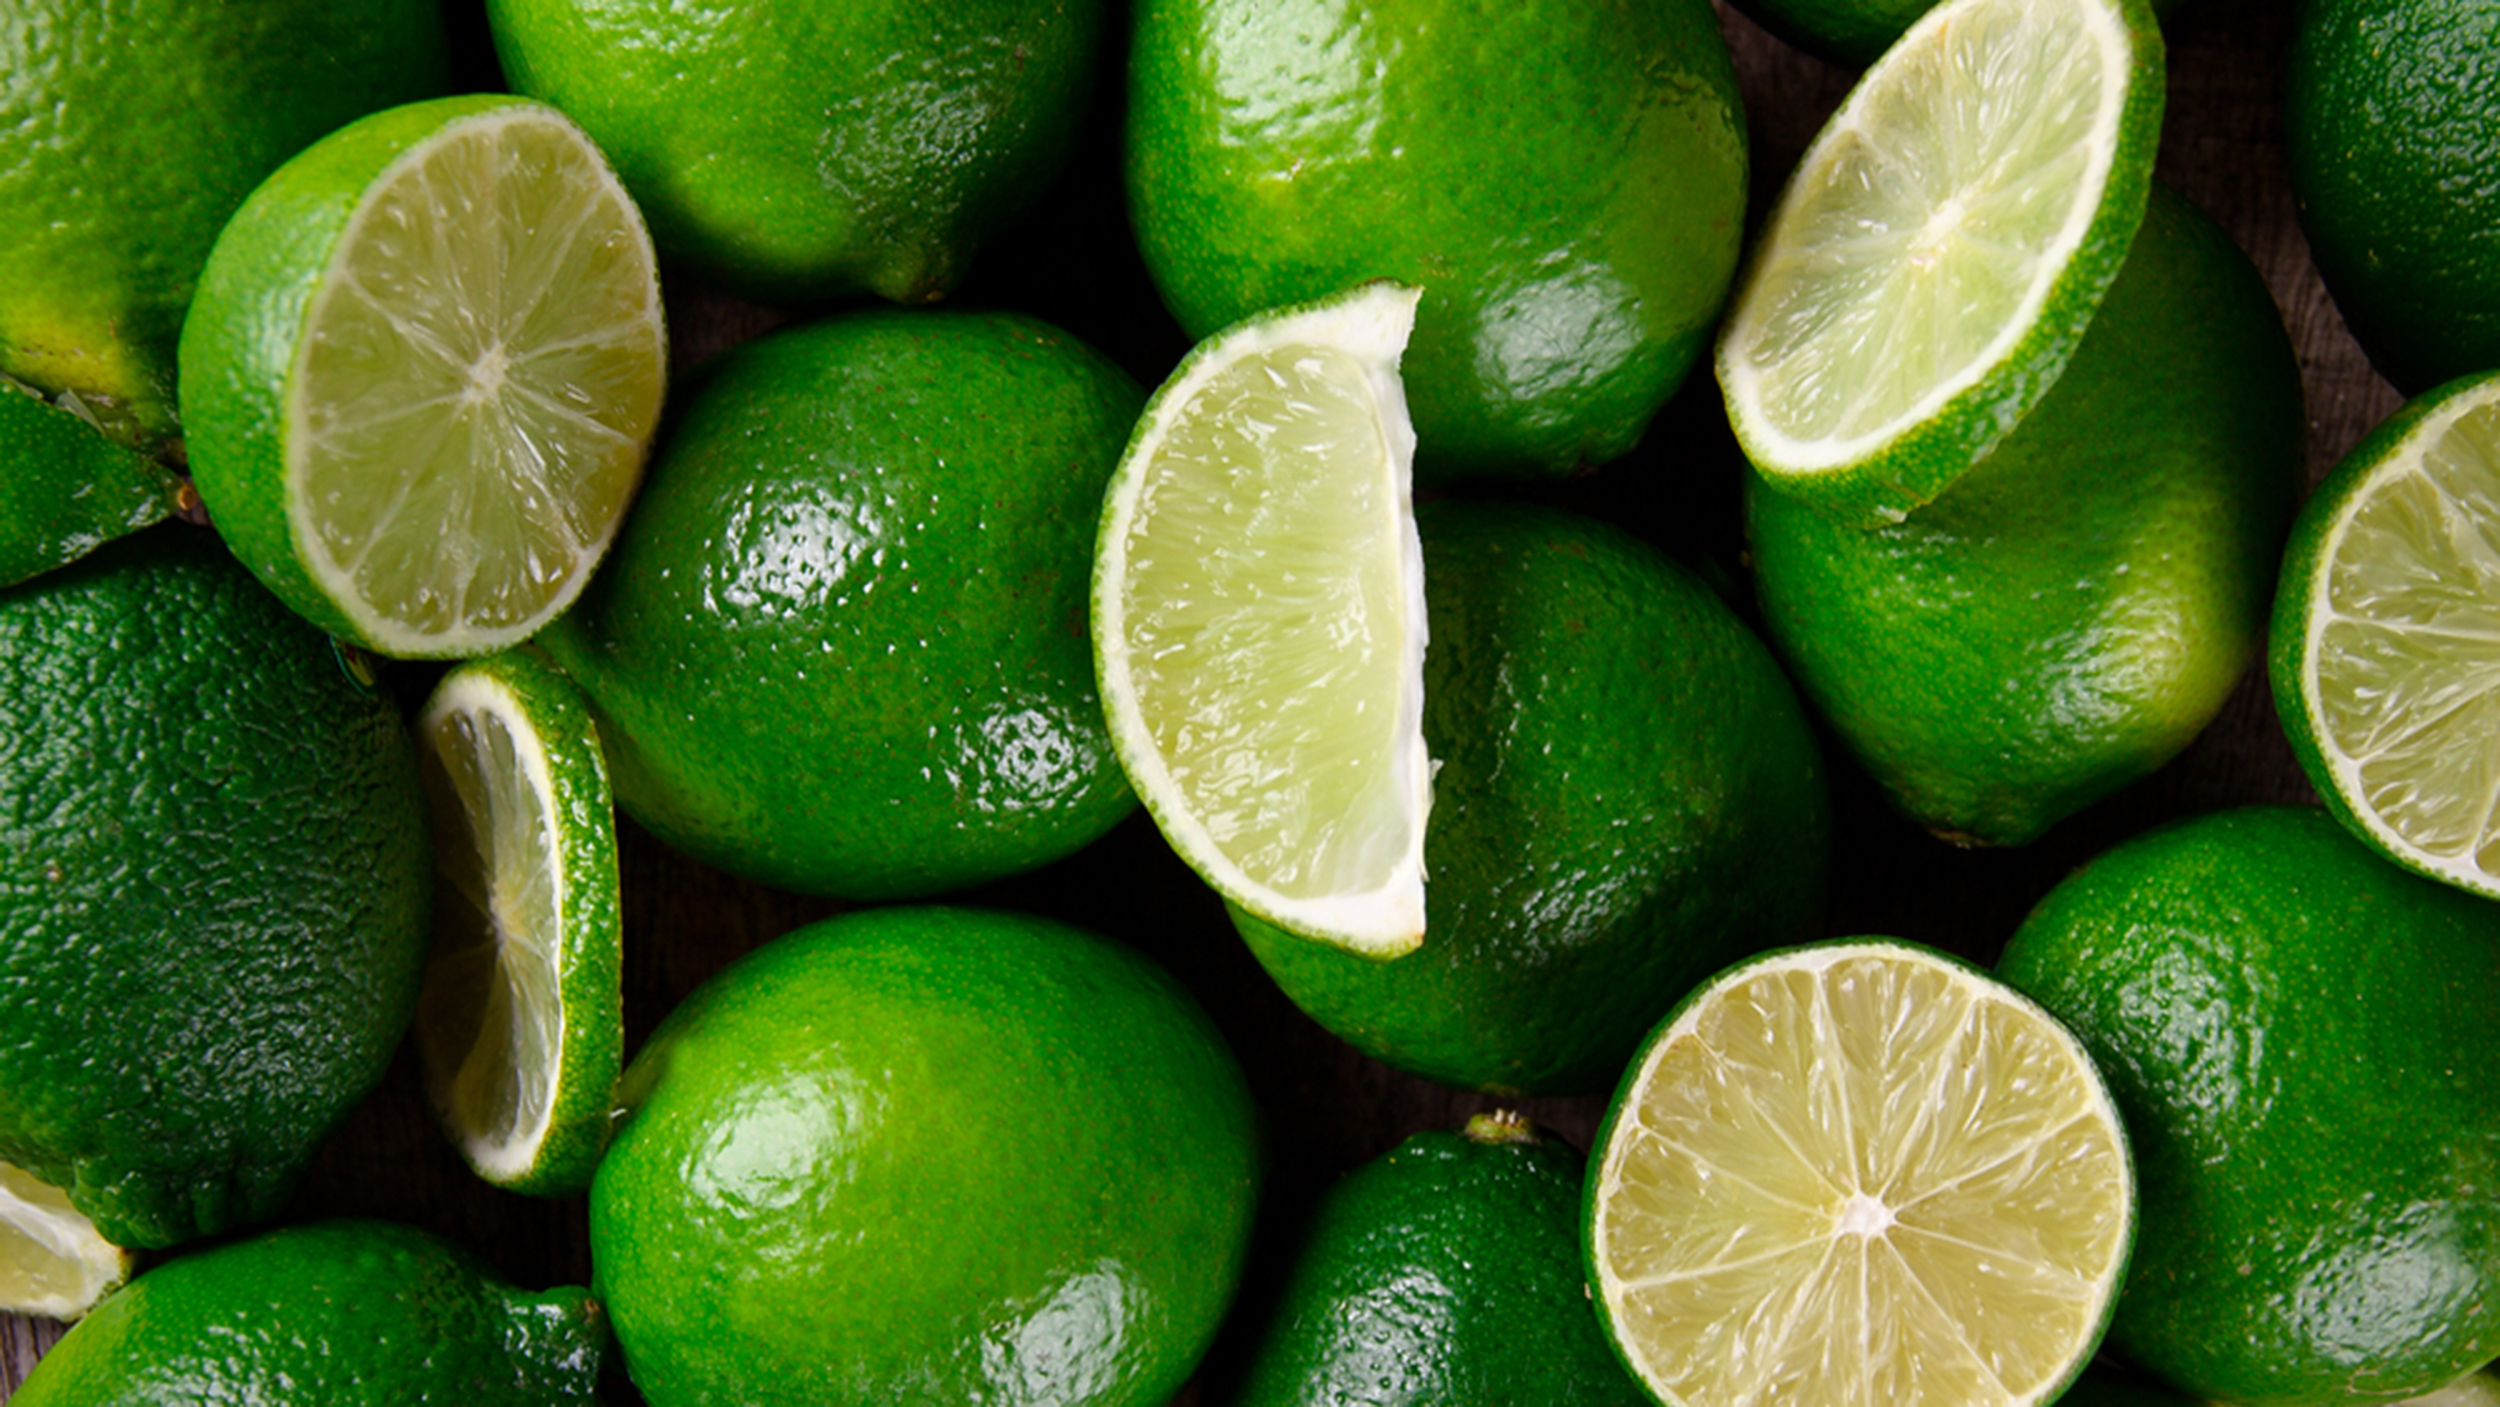 Diy 7 Surprising Household Uses For Limes Today Com